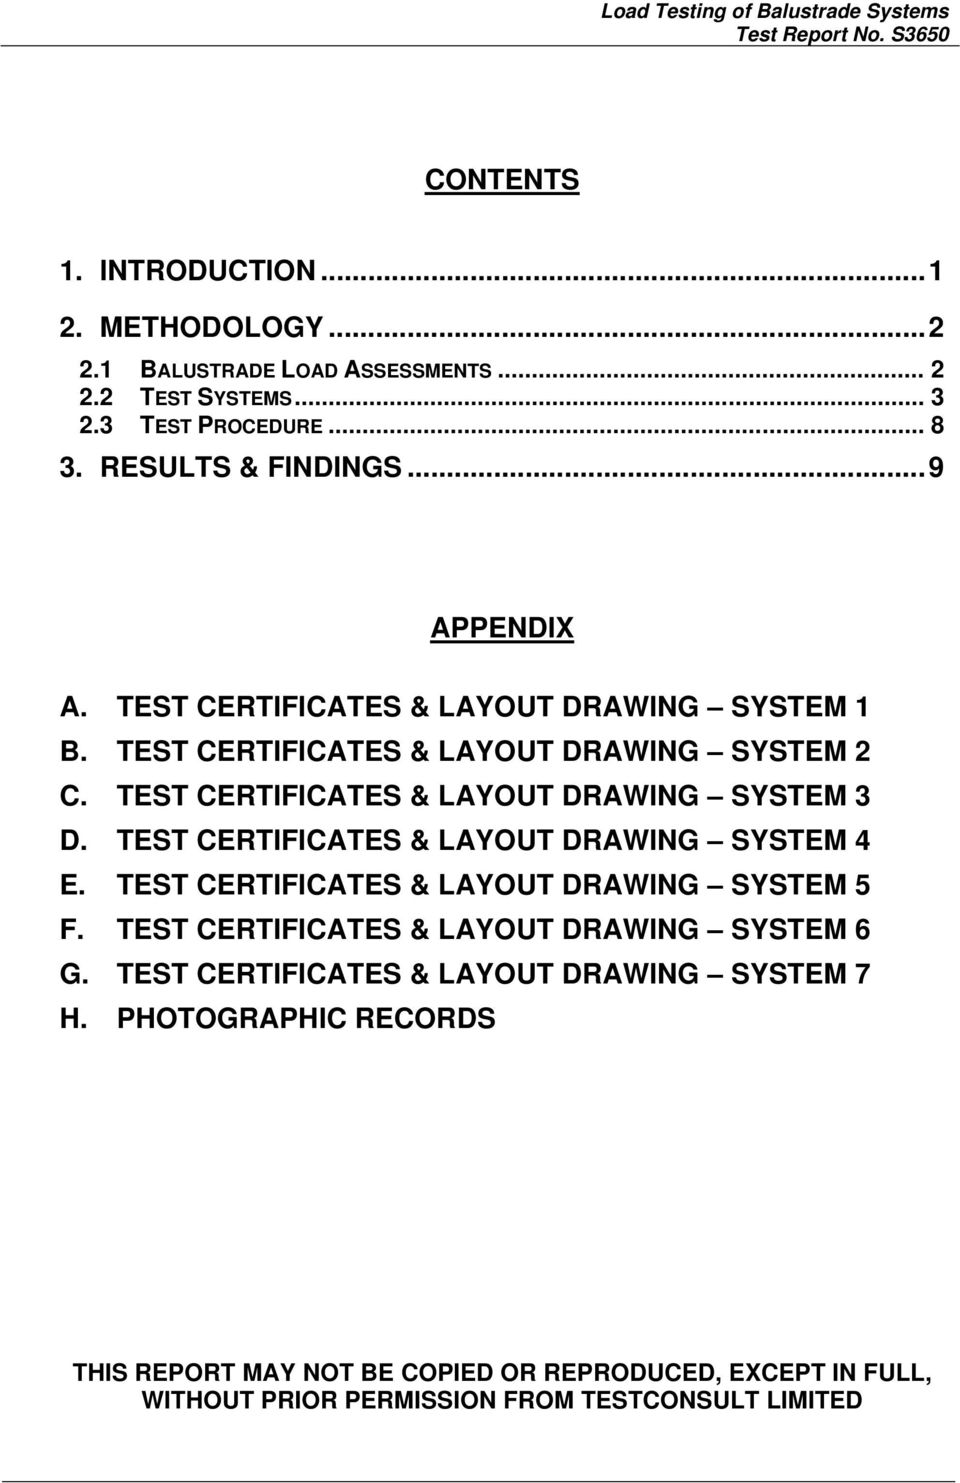 TEST CERTIFICATES & LAYOUT DRAWING SYSTEM 3 D. TEST CERTIFICATES & LAYOUT DRAWING SYSTEM 4 E. TEST CERTIFICATES & LAYOUT DRAWING SYSTEM 5 F.